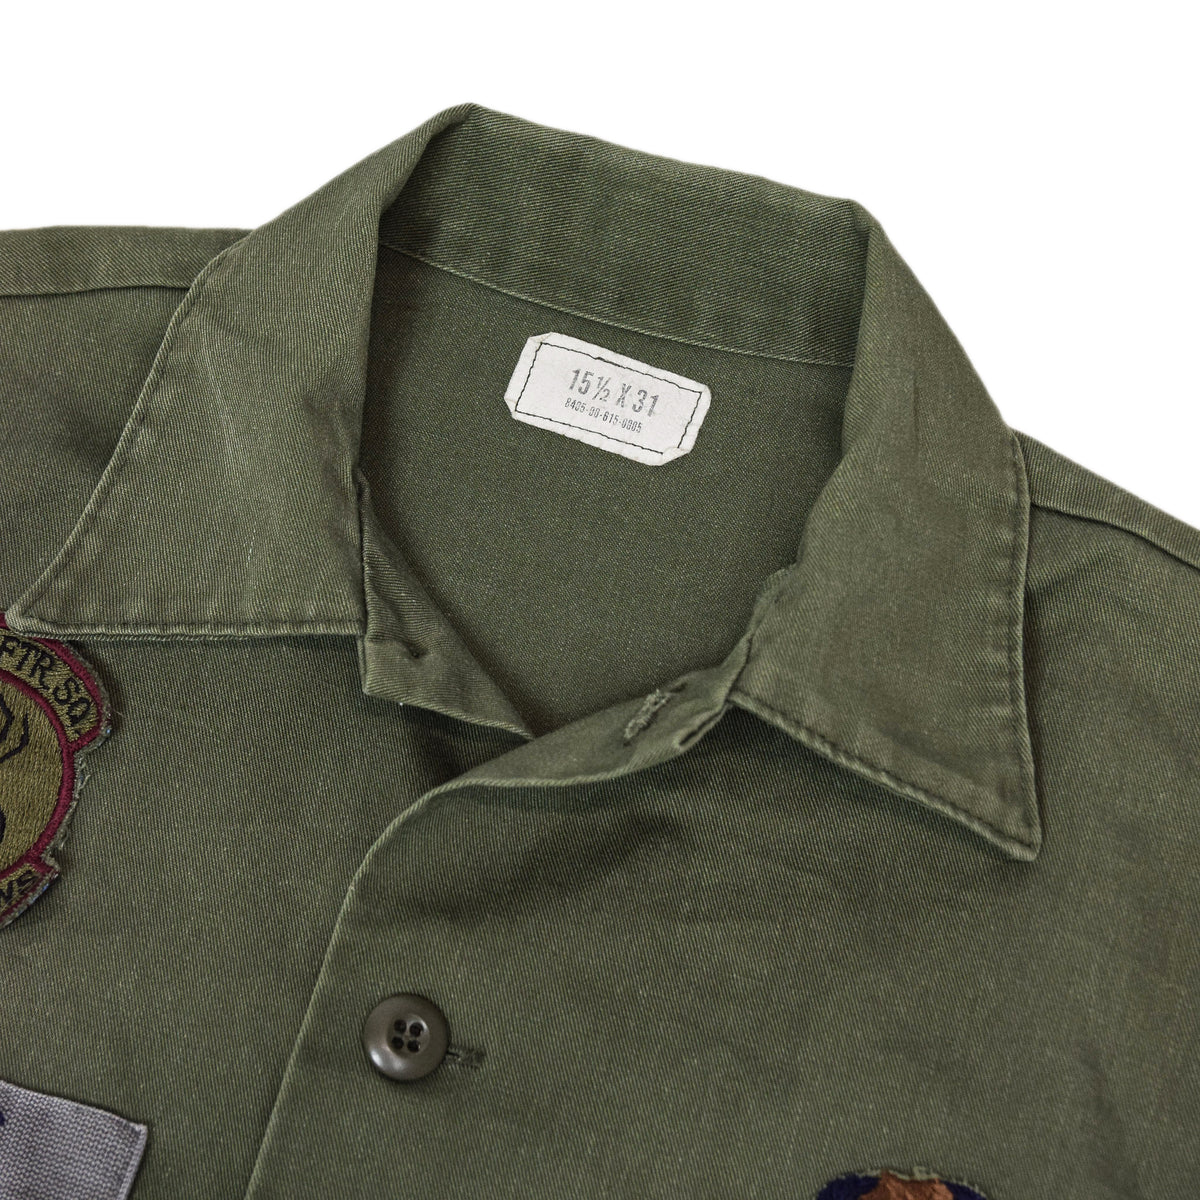 Vintage 80s US Air Force Dura Press Utility Military Shirt OG-507 Olive Green S / M collar